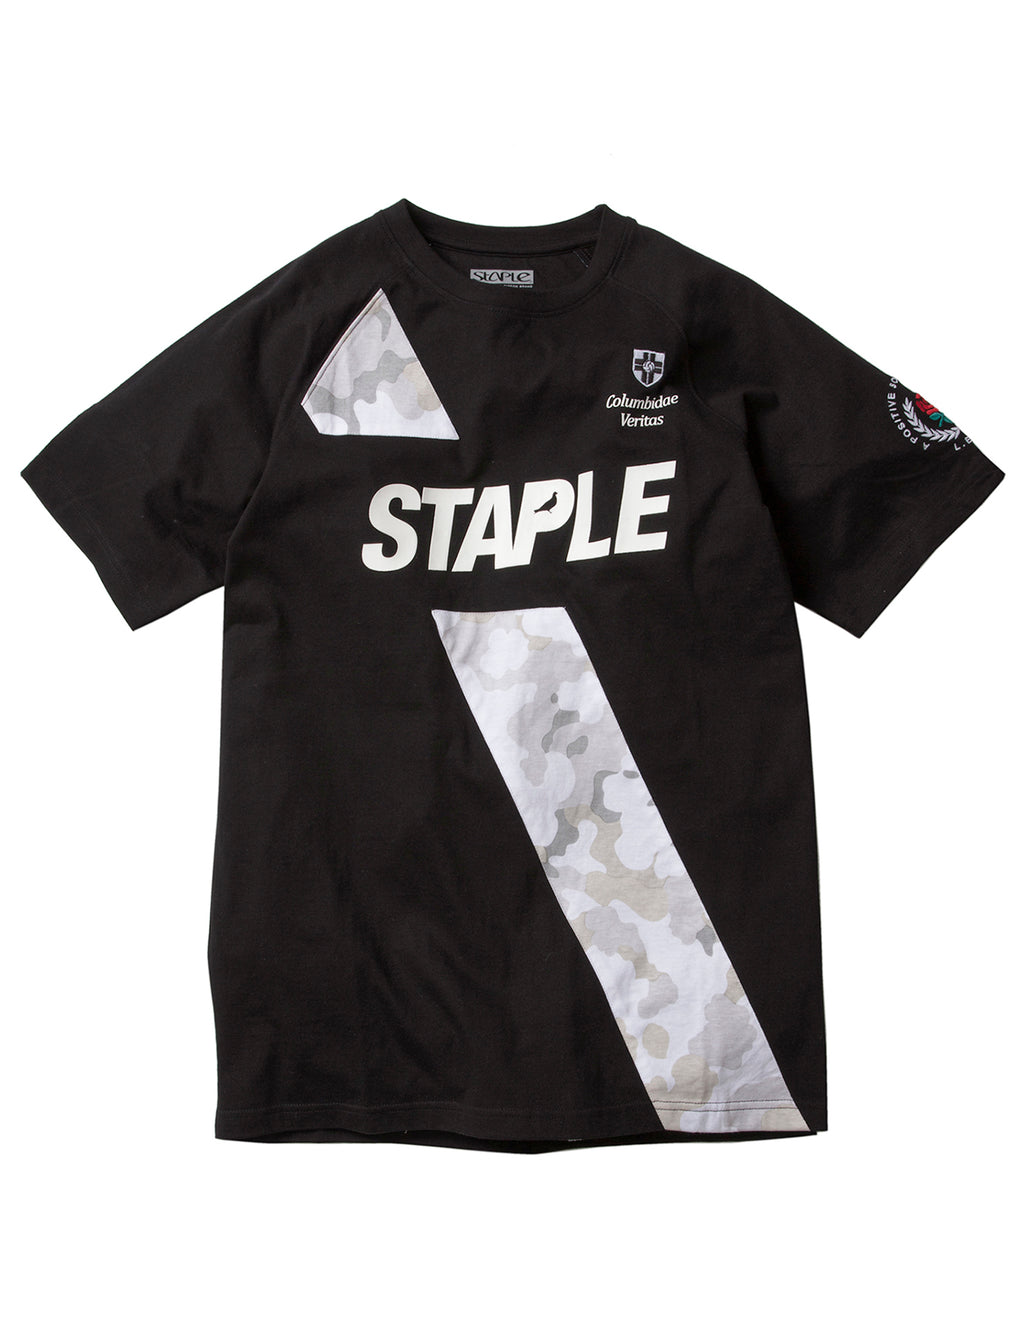 FC Staple Raglan Tee - Tee | Staple Pigeon